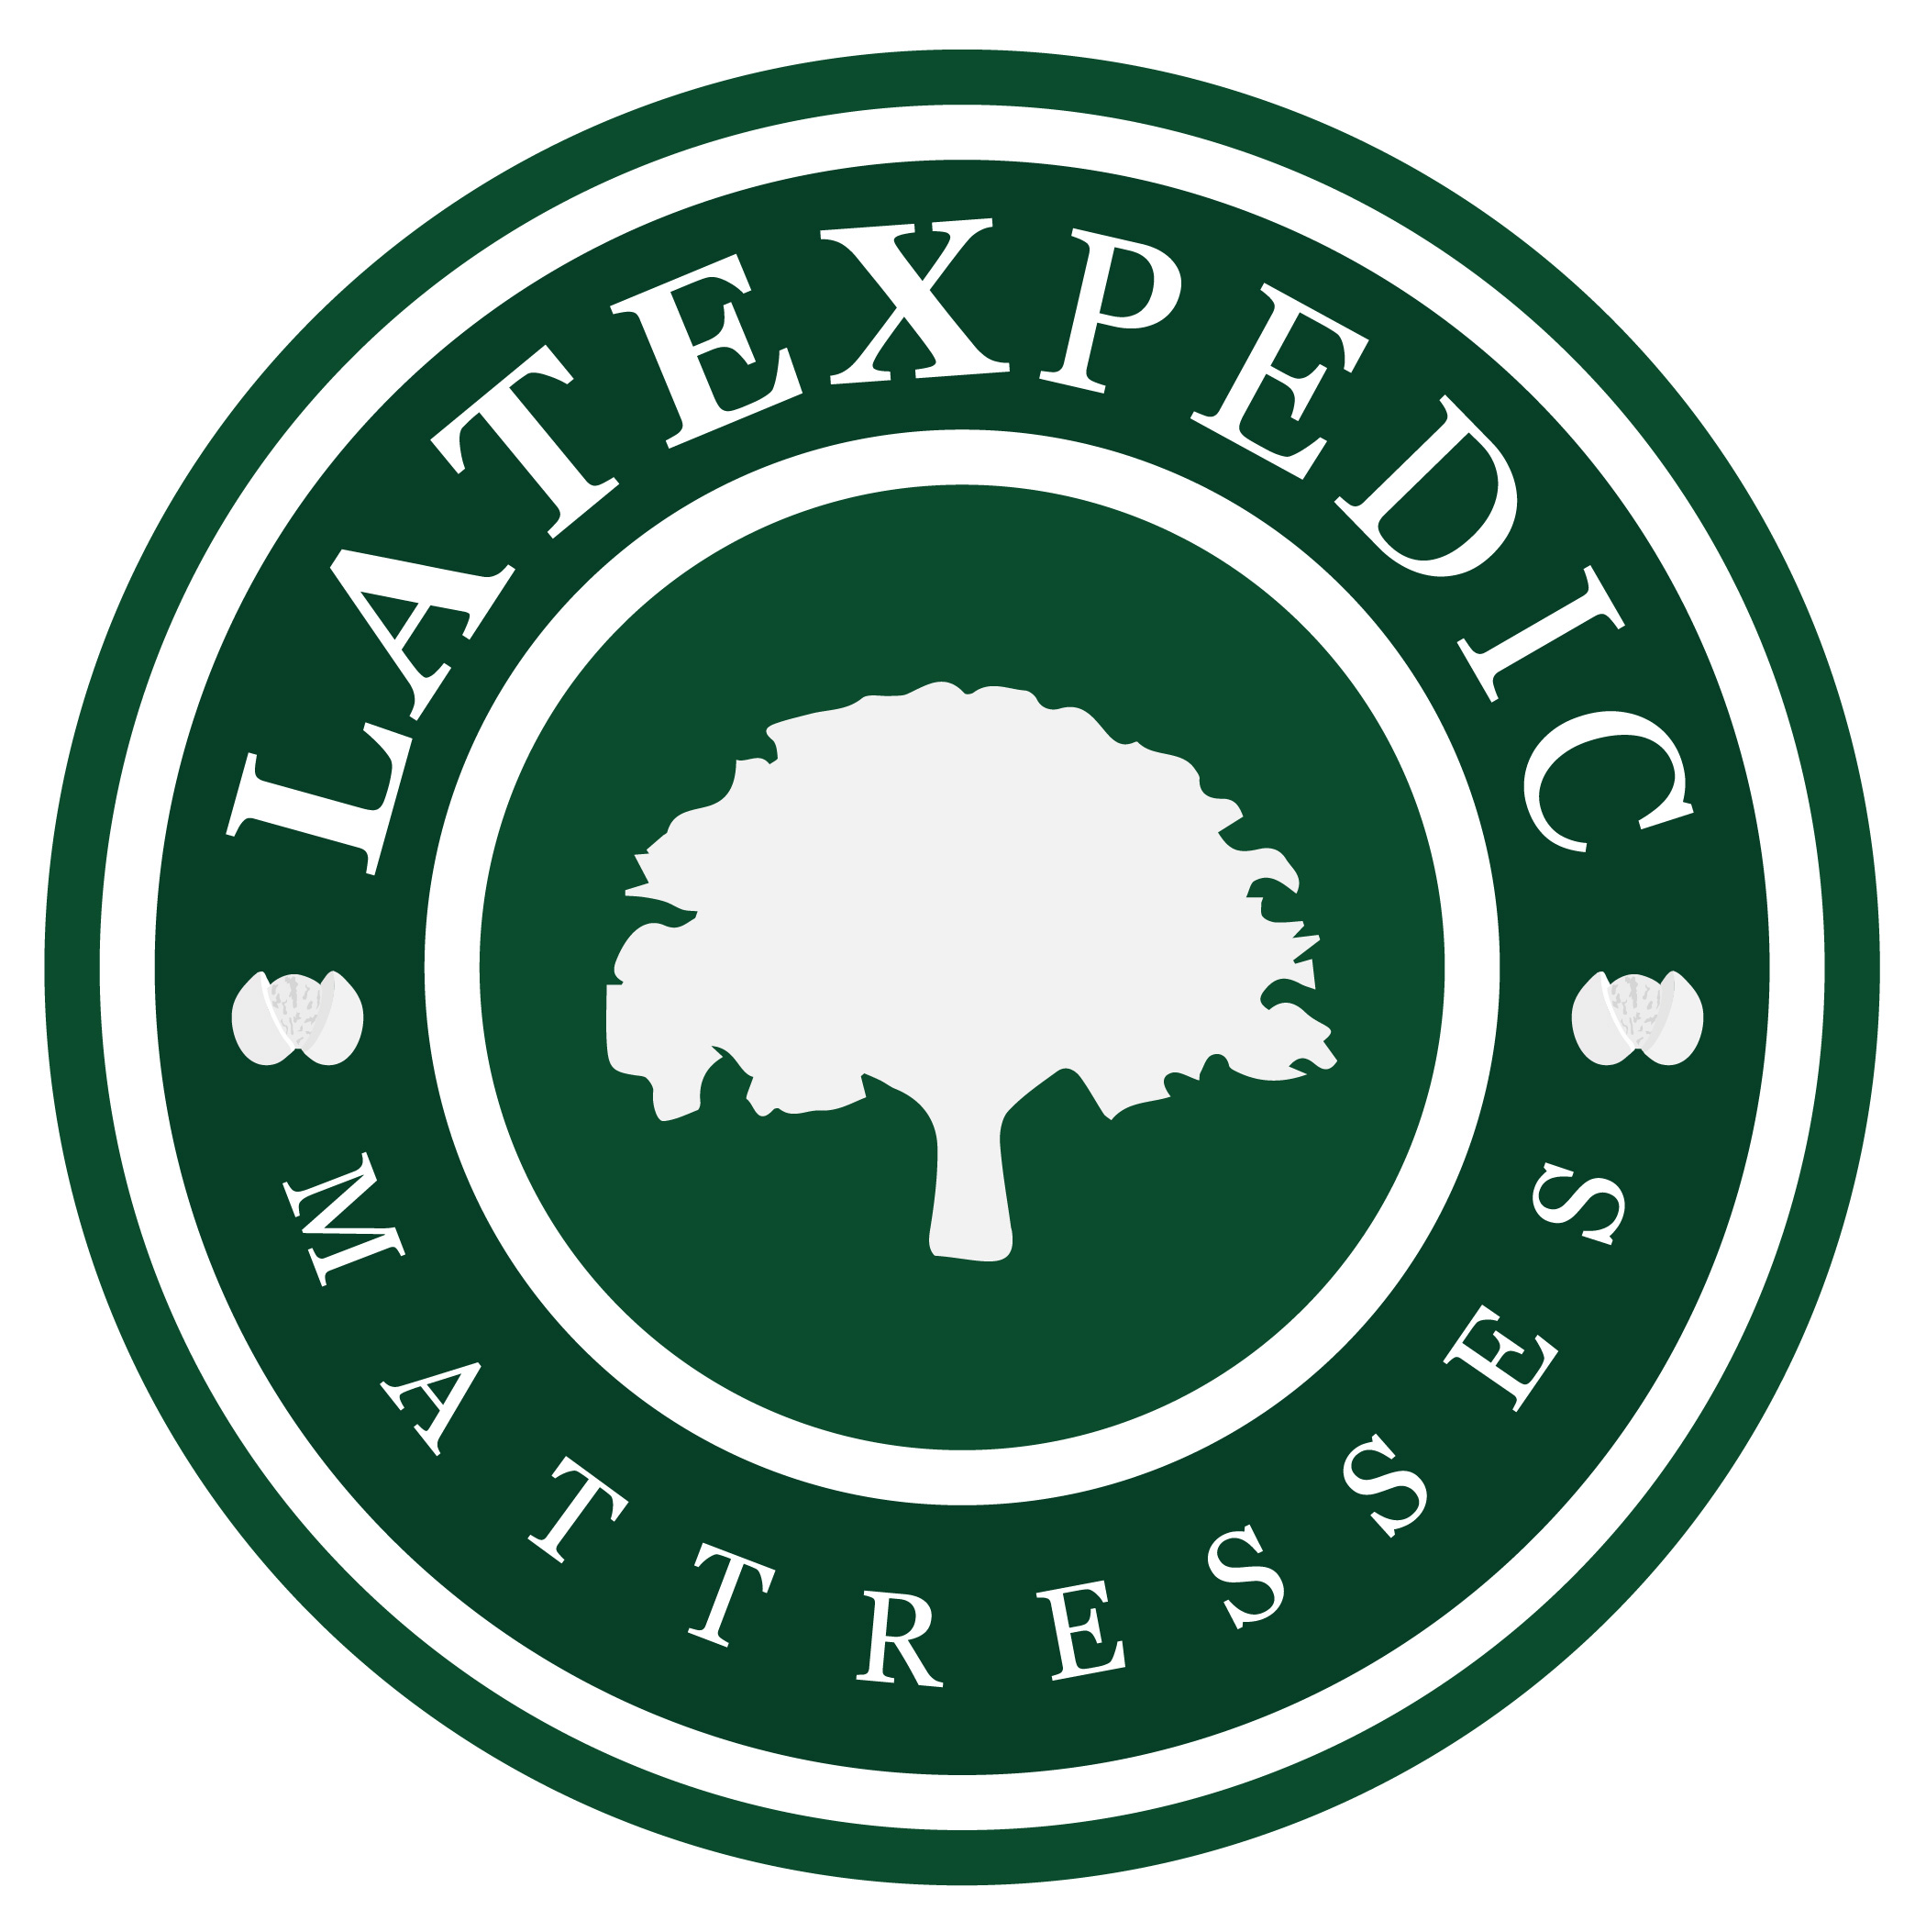 latex pedic natural organic adjustable bed Costa Mesa Huntington Beach Santa Ana  LA  mattress